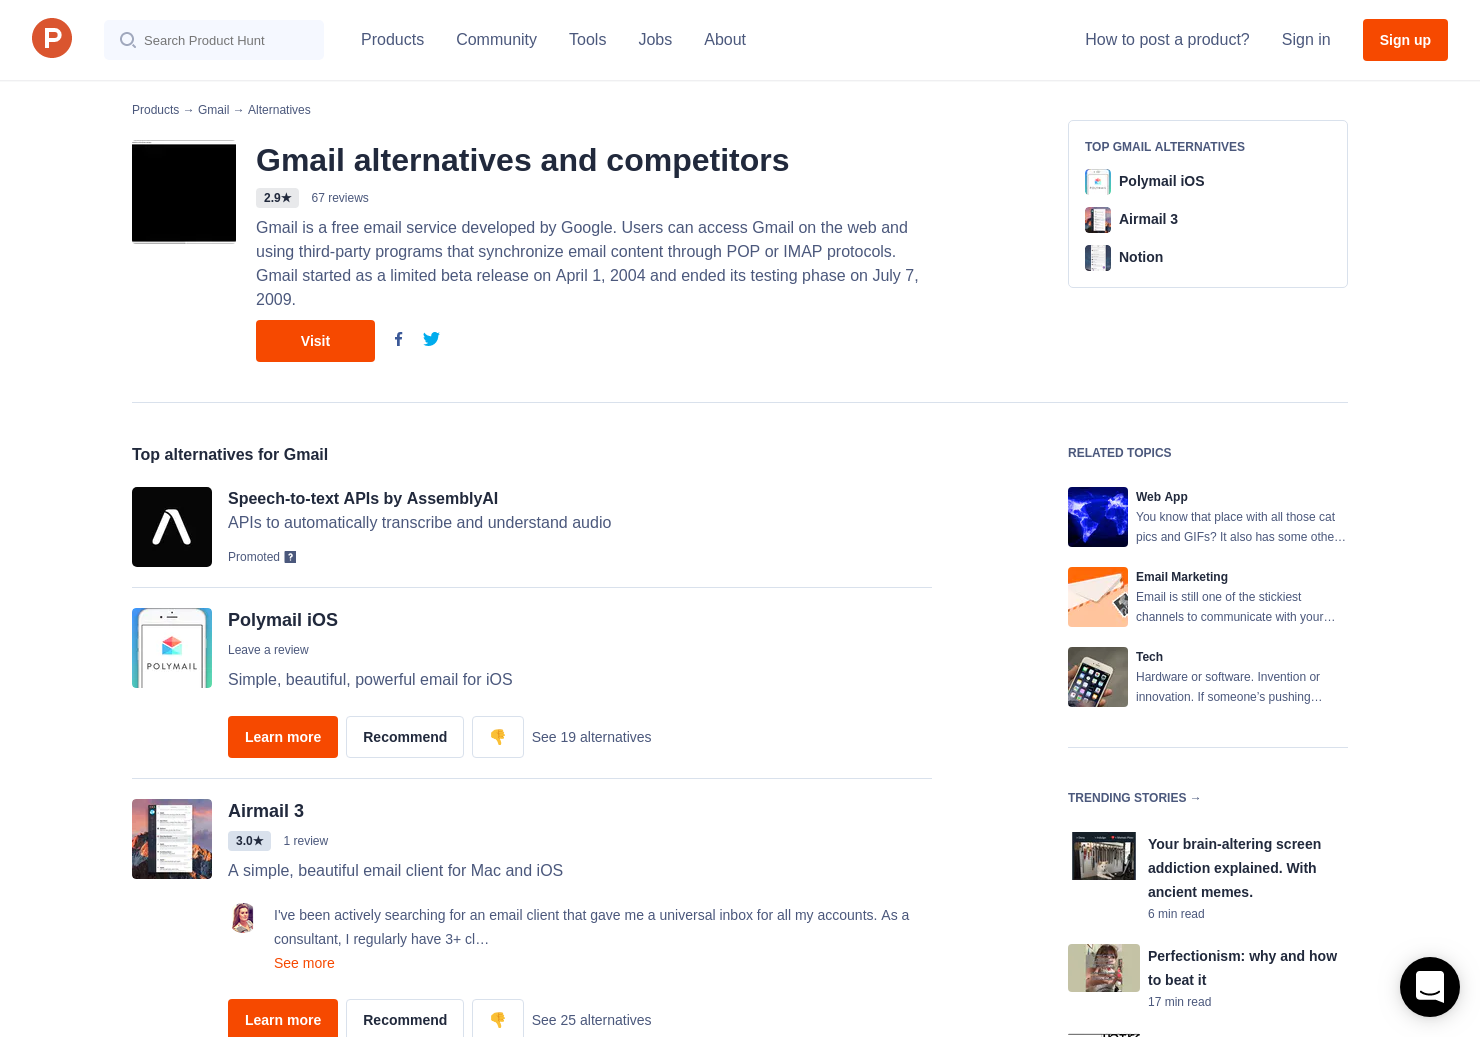 13 Alternatives to New Gmail | Product Hunt